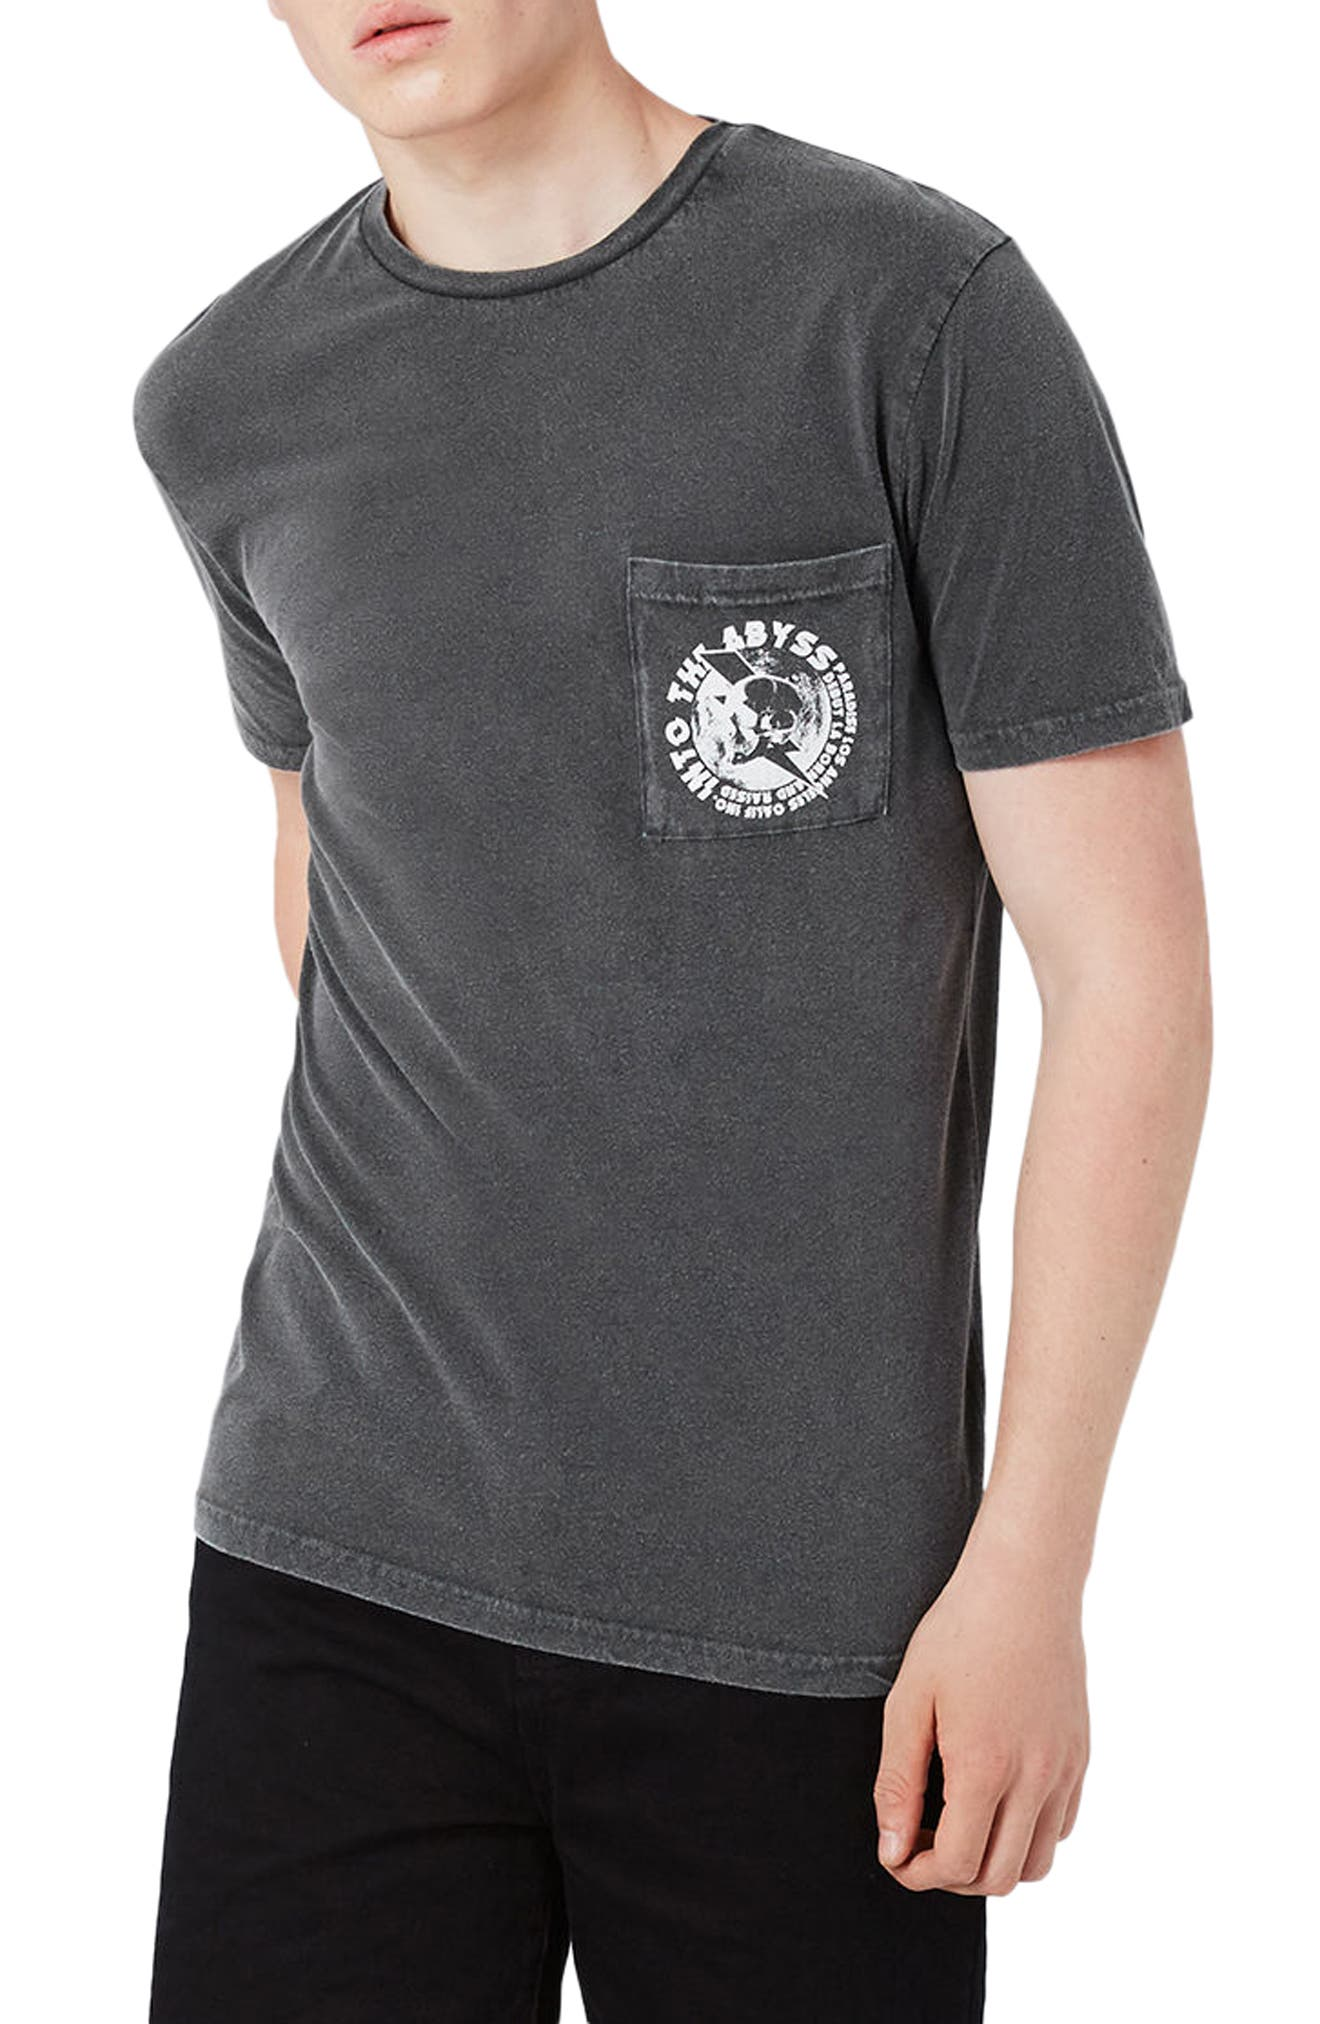 Topman Washed Abyss Pocket T-Shirt